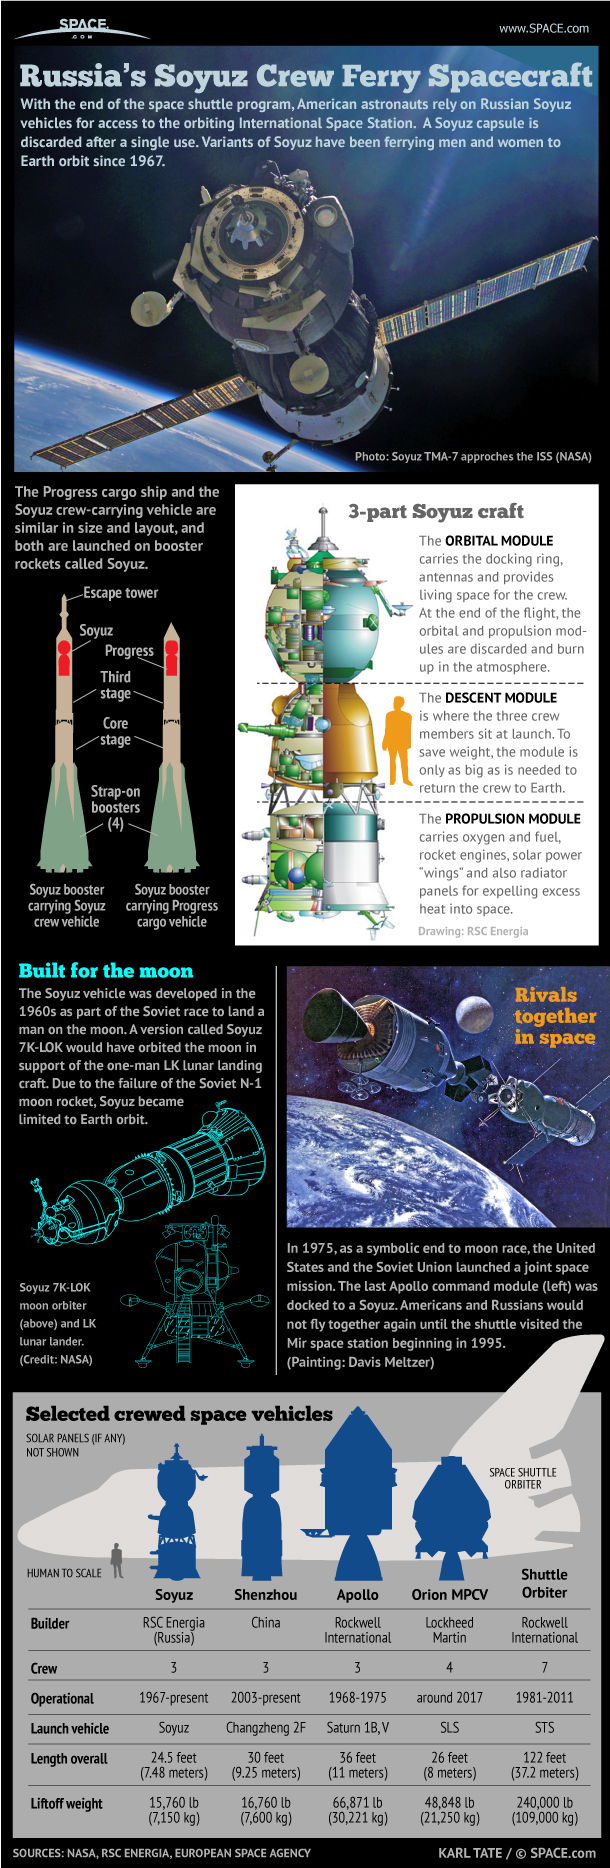 Inside Russia's Crewed Soyuz Space Capsule (Infographic)